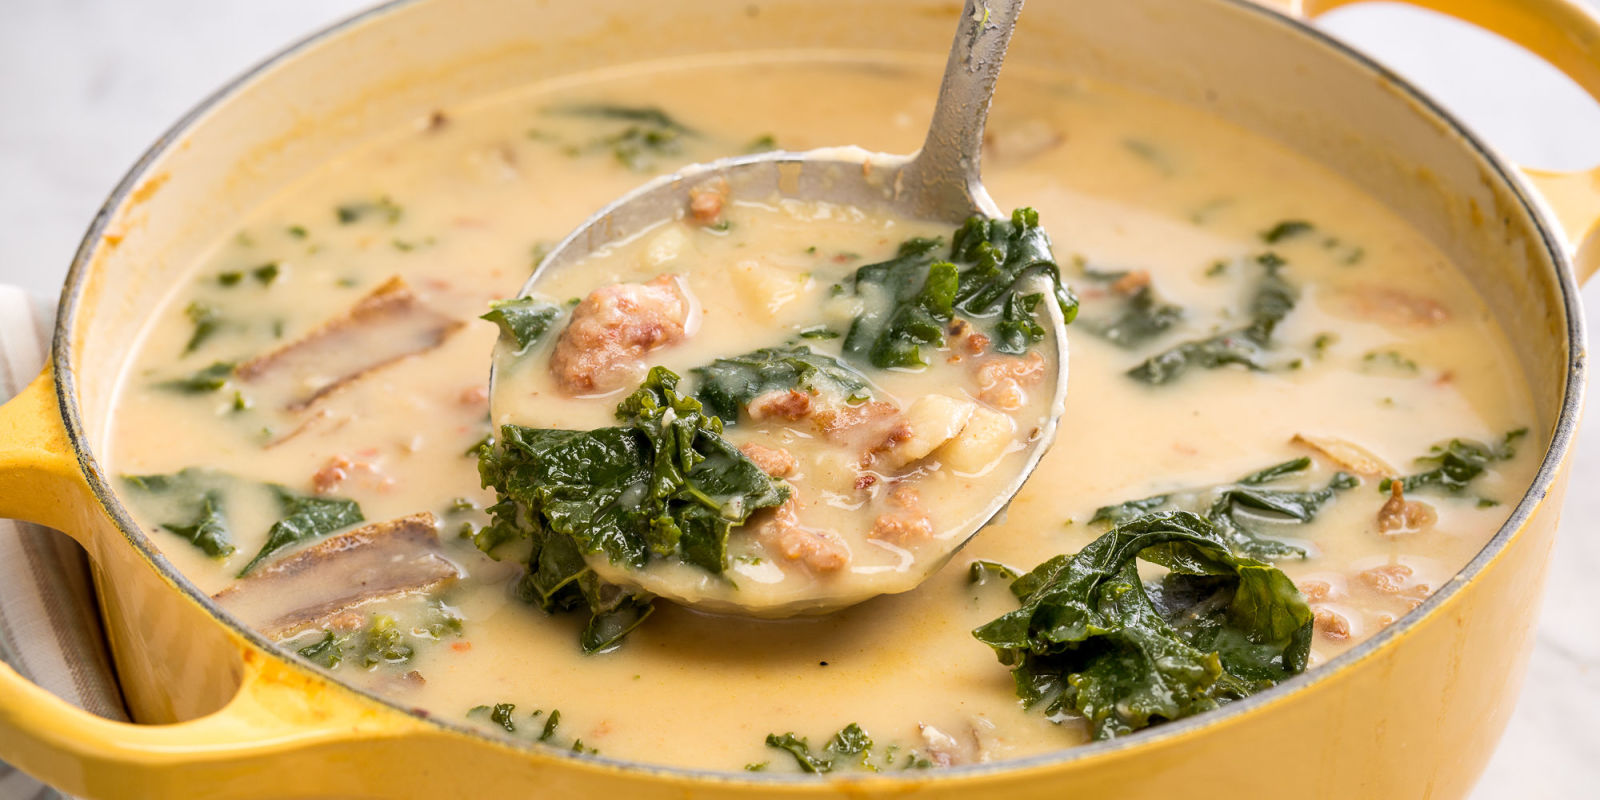 Olive garden zuppa toscana recipe olive garden tuscan soup recipe for Olive garden potato sausage kale soup recipe